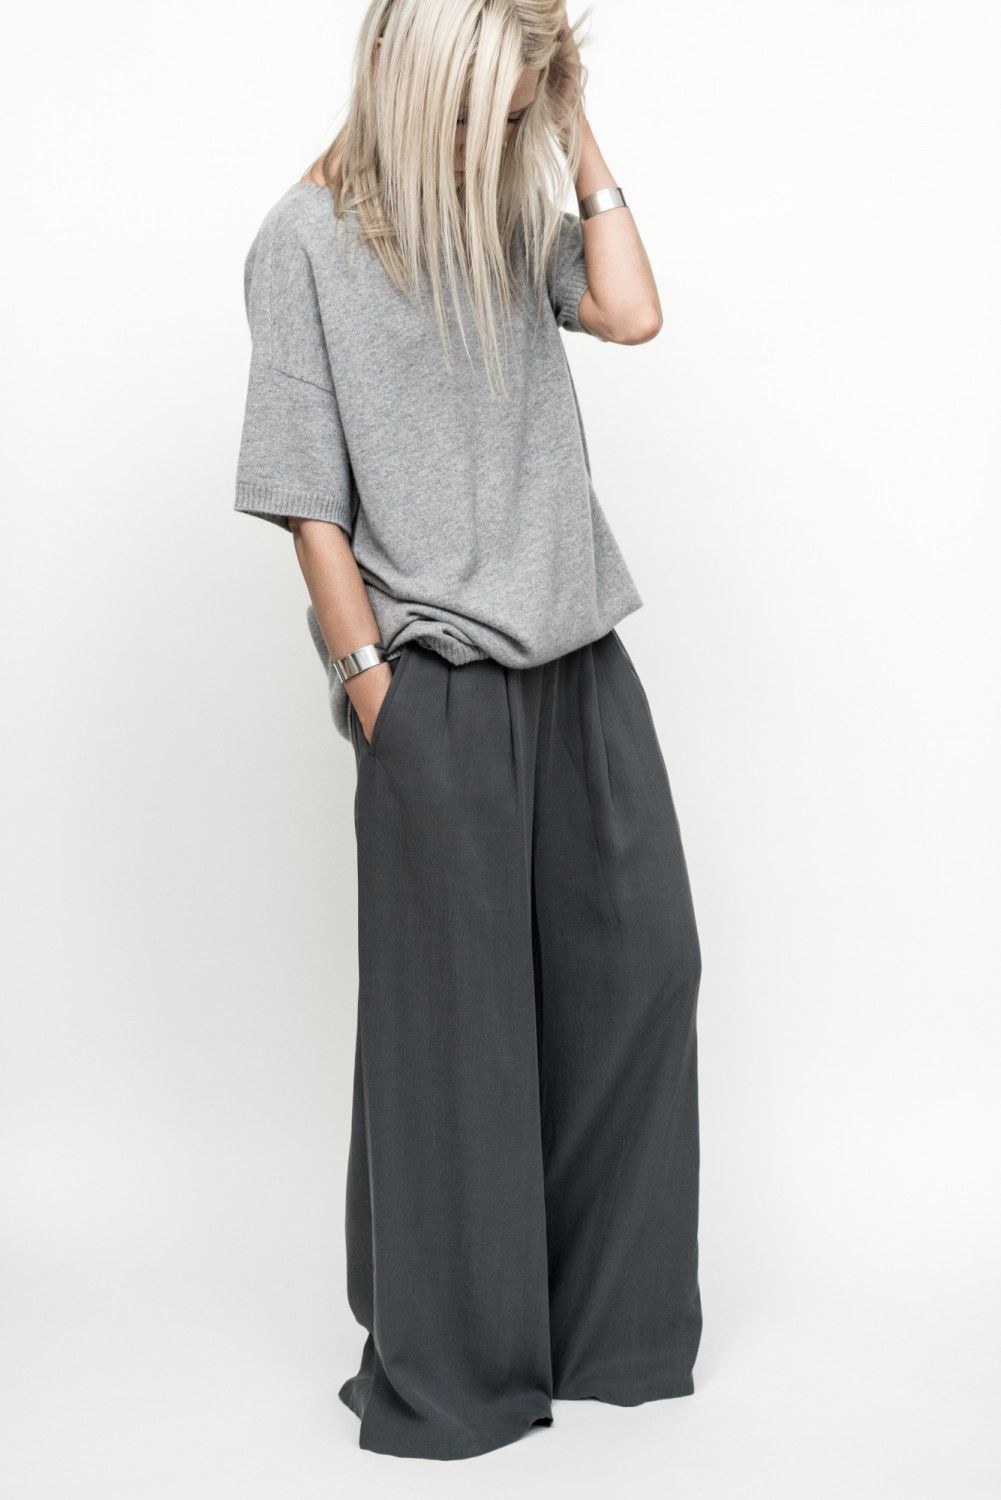 figtny.com | 7 Key Pieces by Eileen Fisher | My Style Inspiration ...